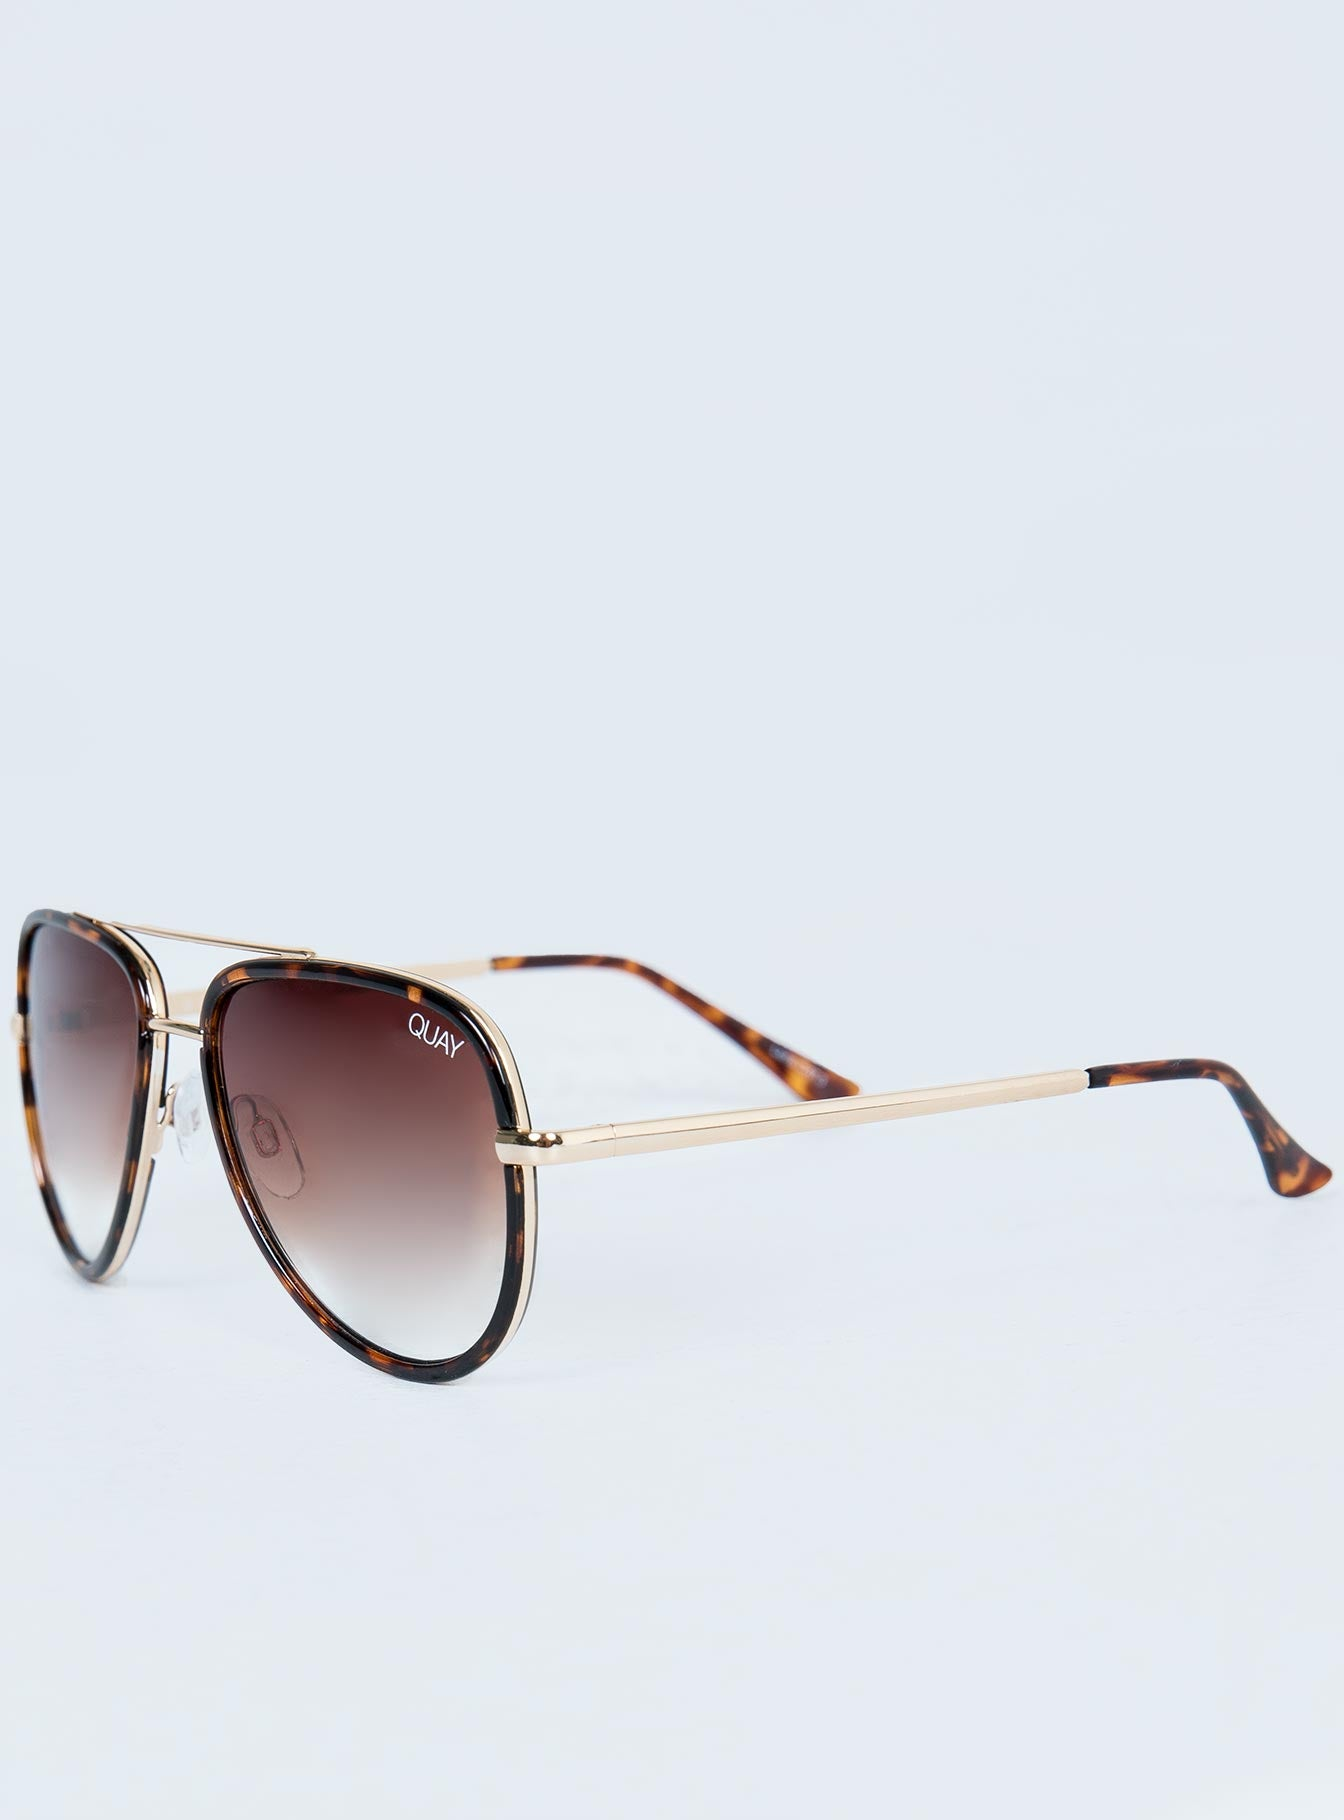 Quay Australia Tort All In Mini Sunglasses